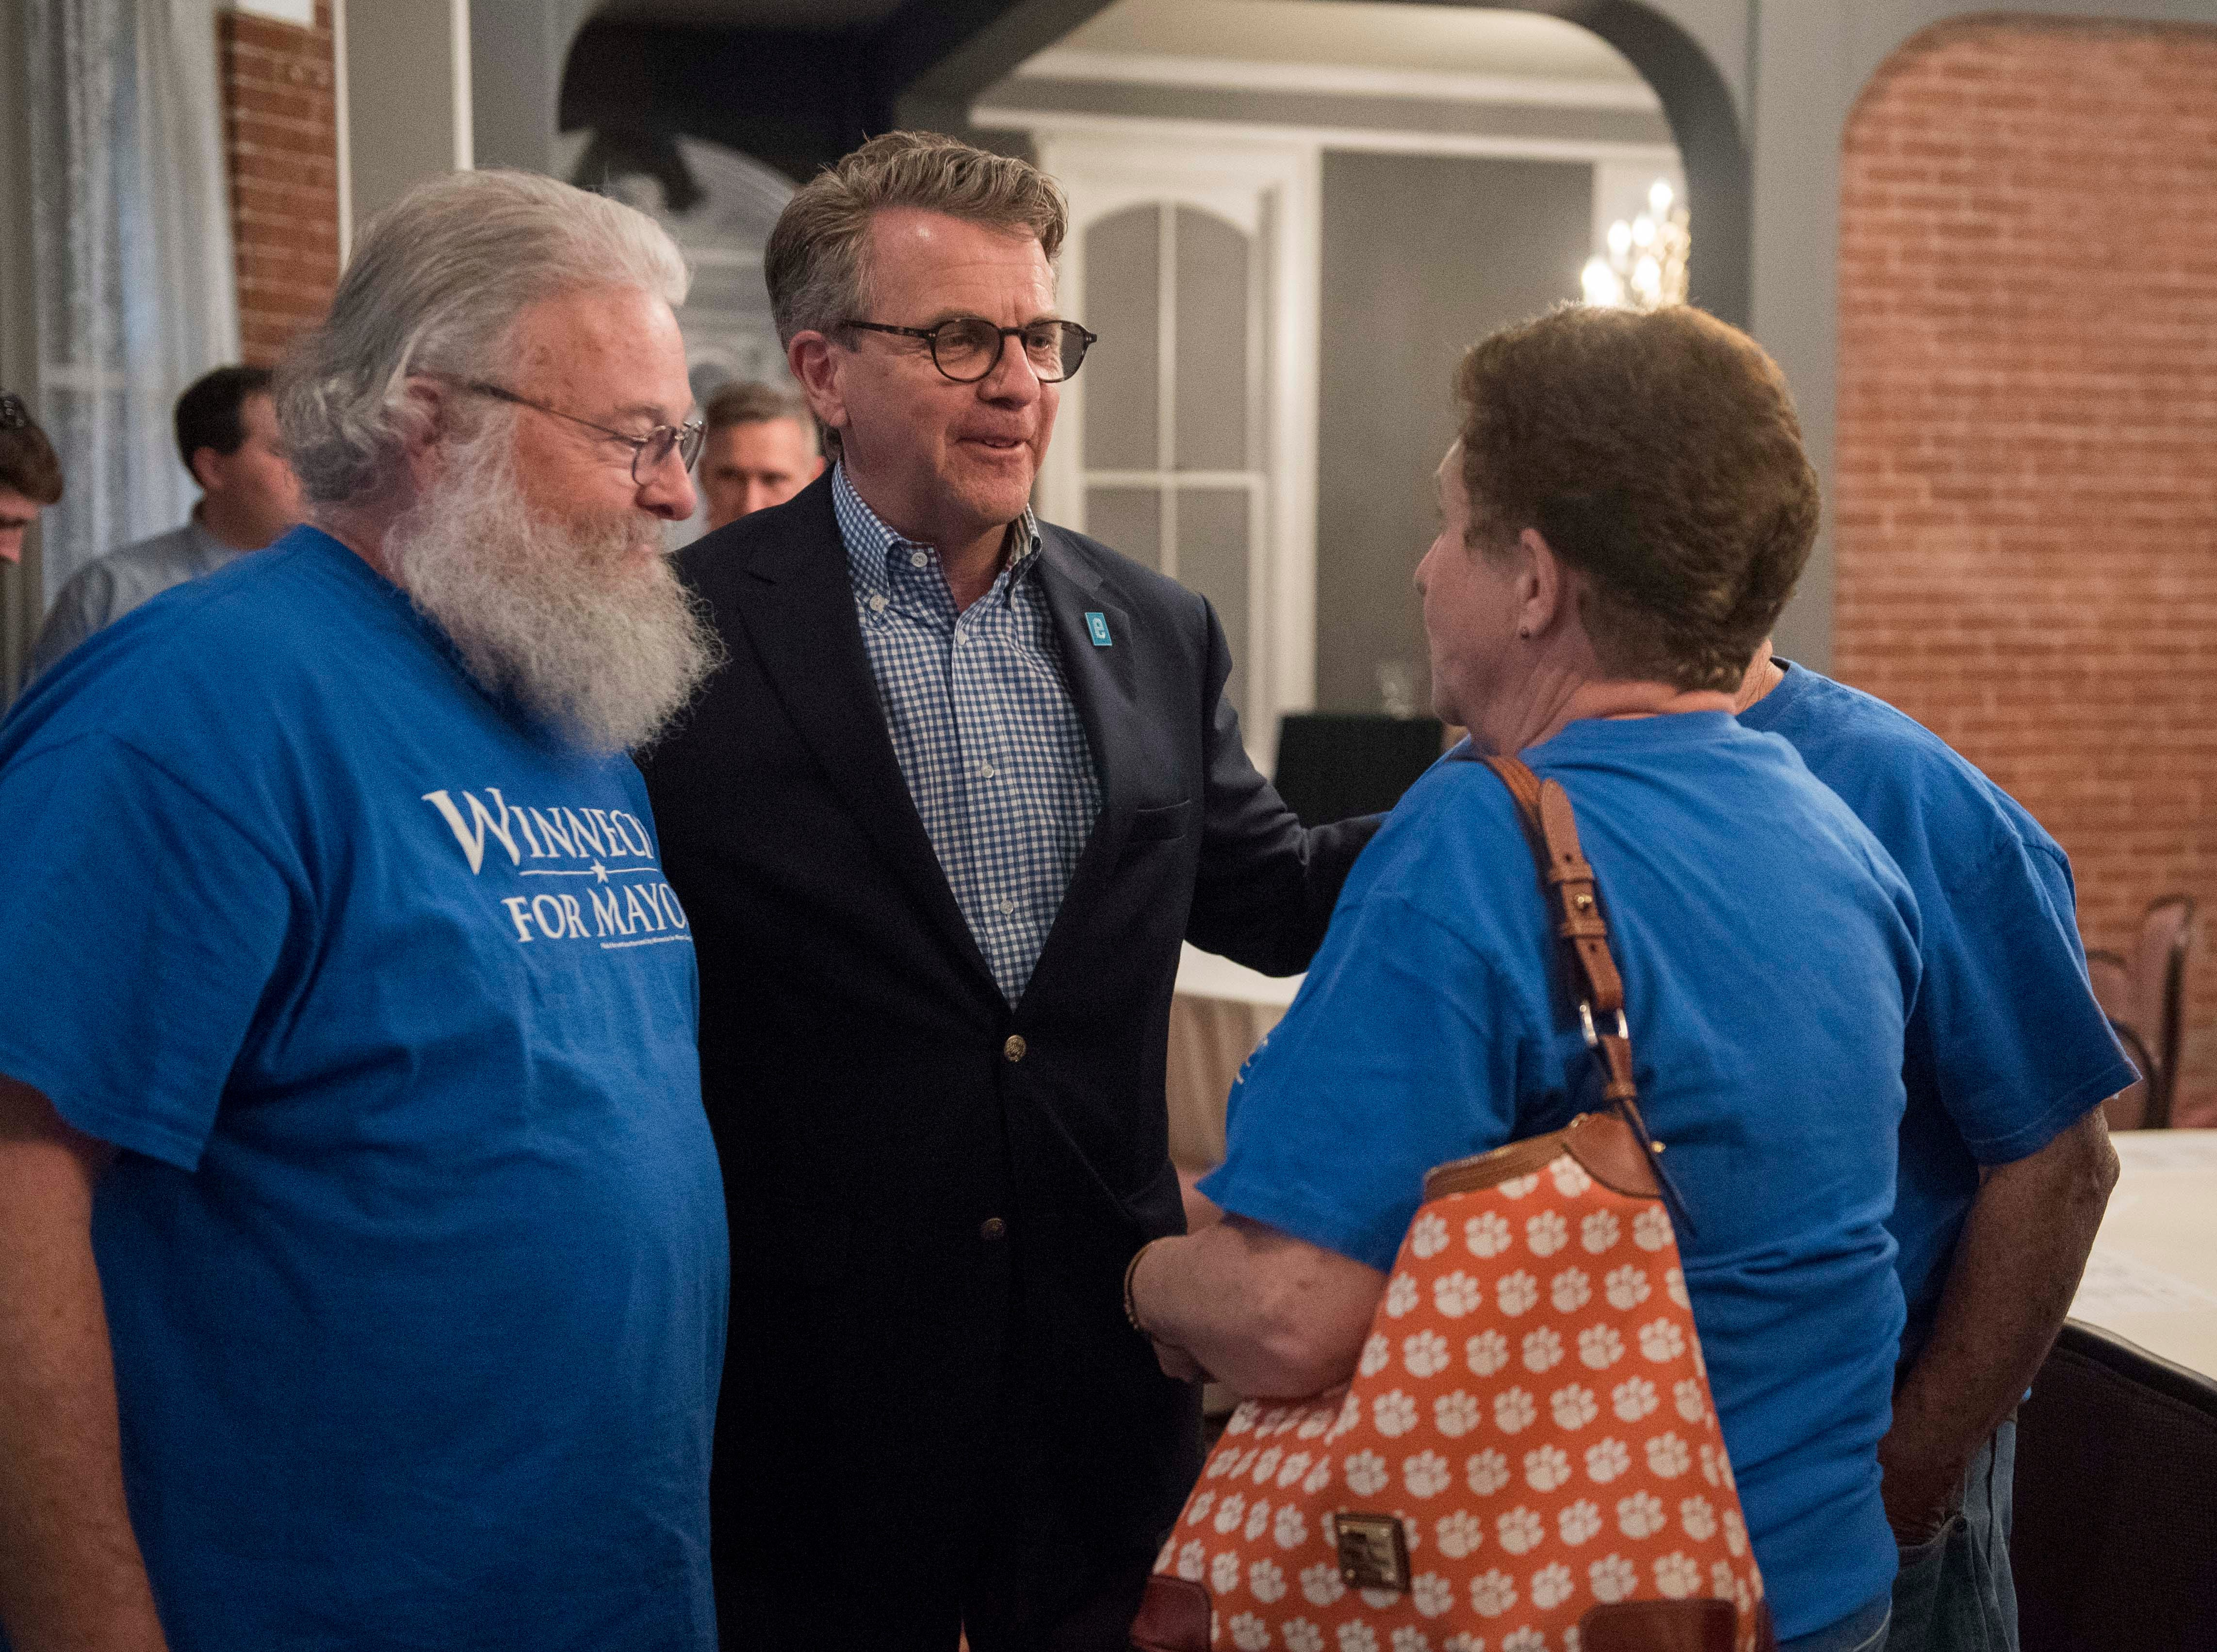 Mayor Lloyd Winnecke chats with supporter Susan Harp, Tuesday, May 7, 2019.